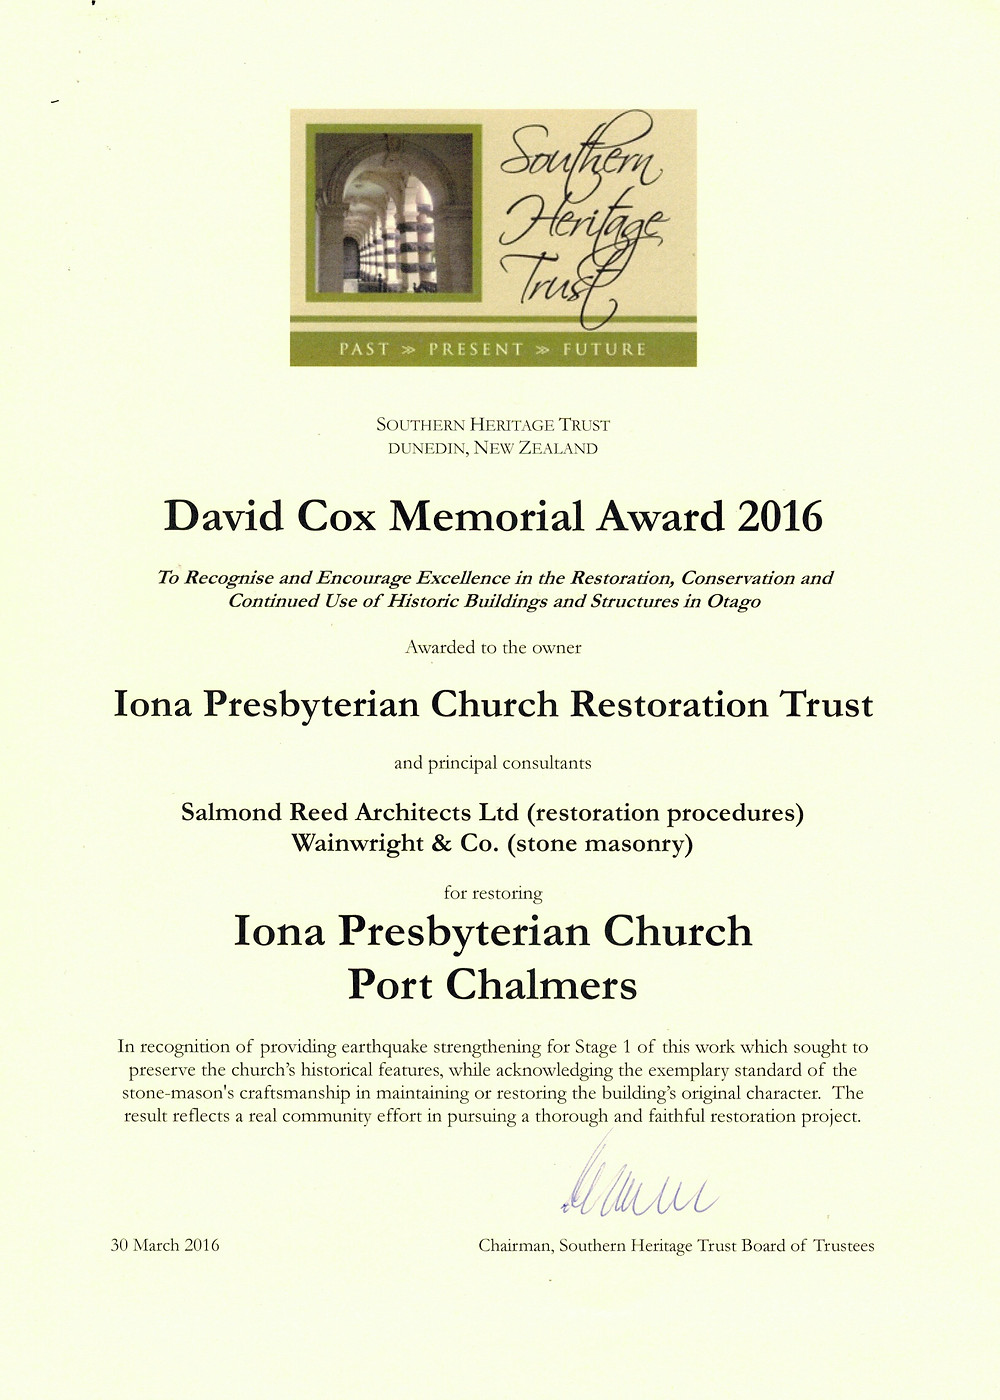 Restoration work to the historic Port Chalmers church